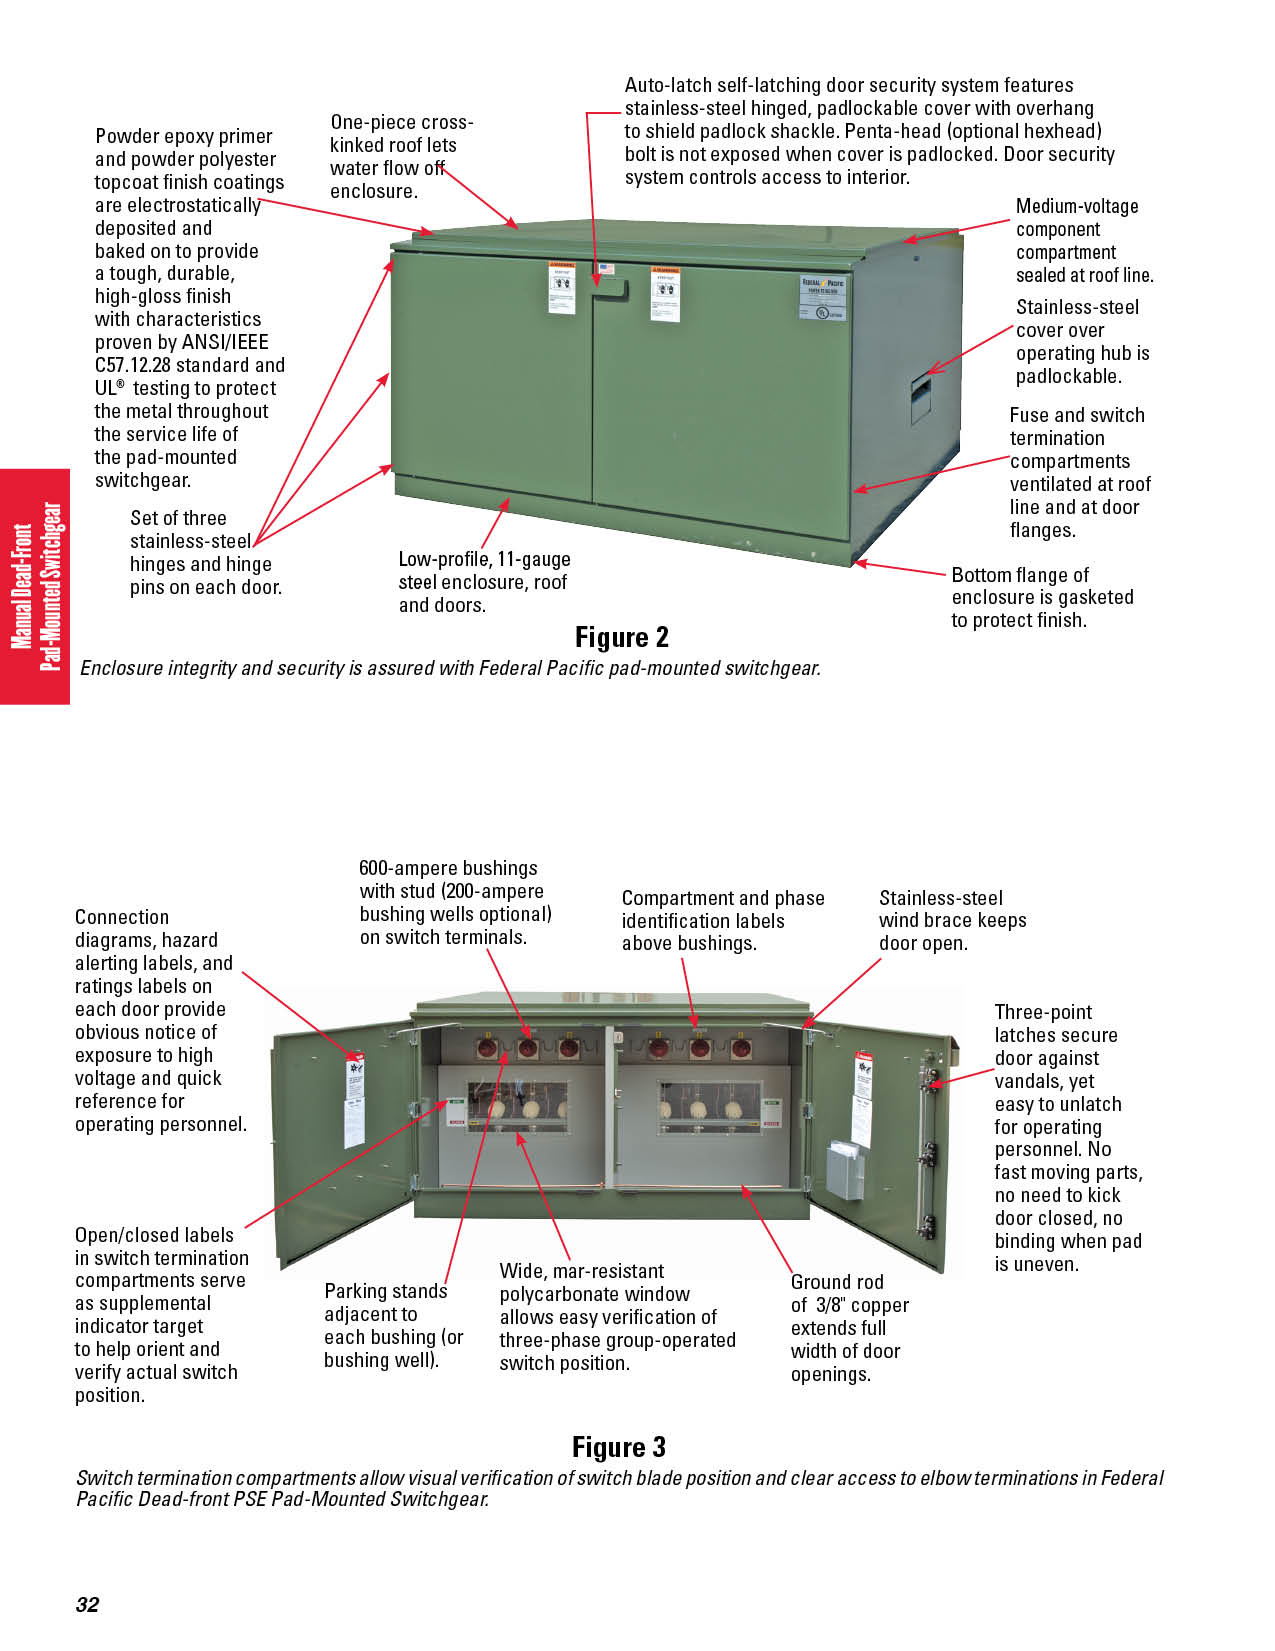 Federal Pacific Switchgear Product Catalog - Federal Pacific